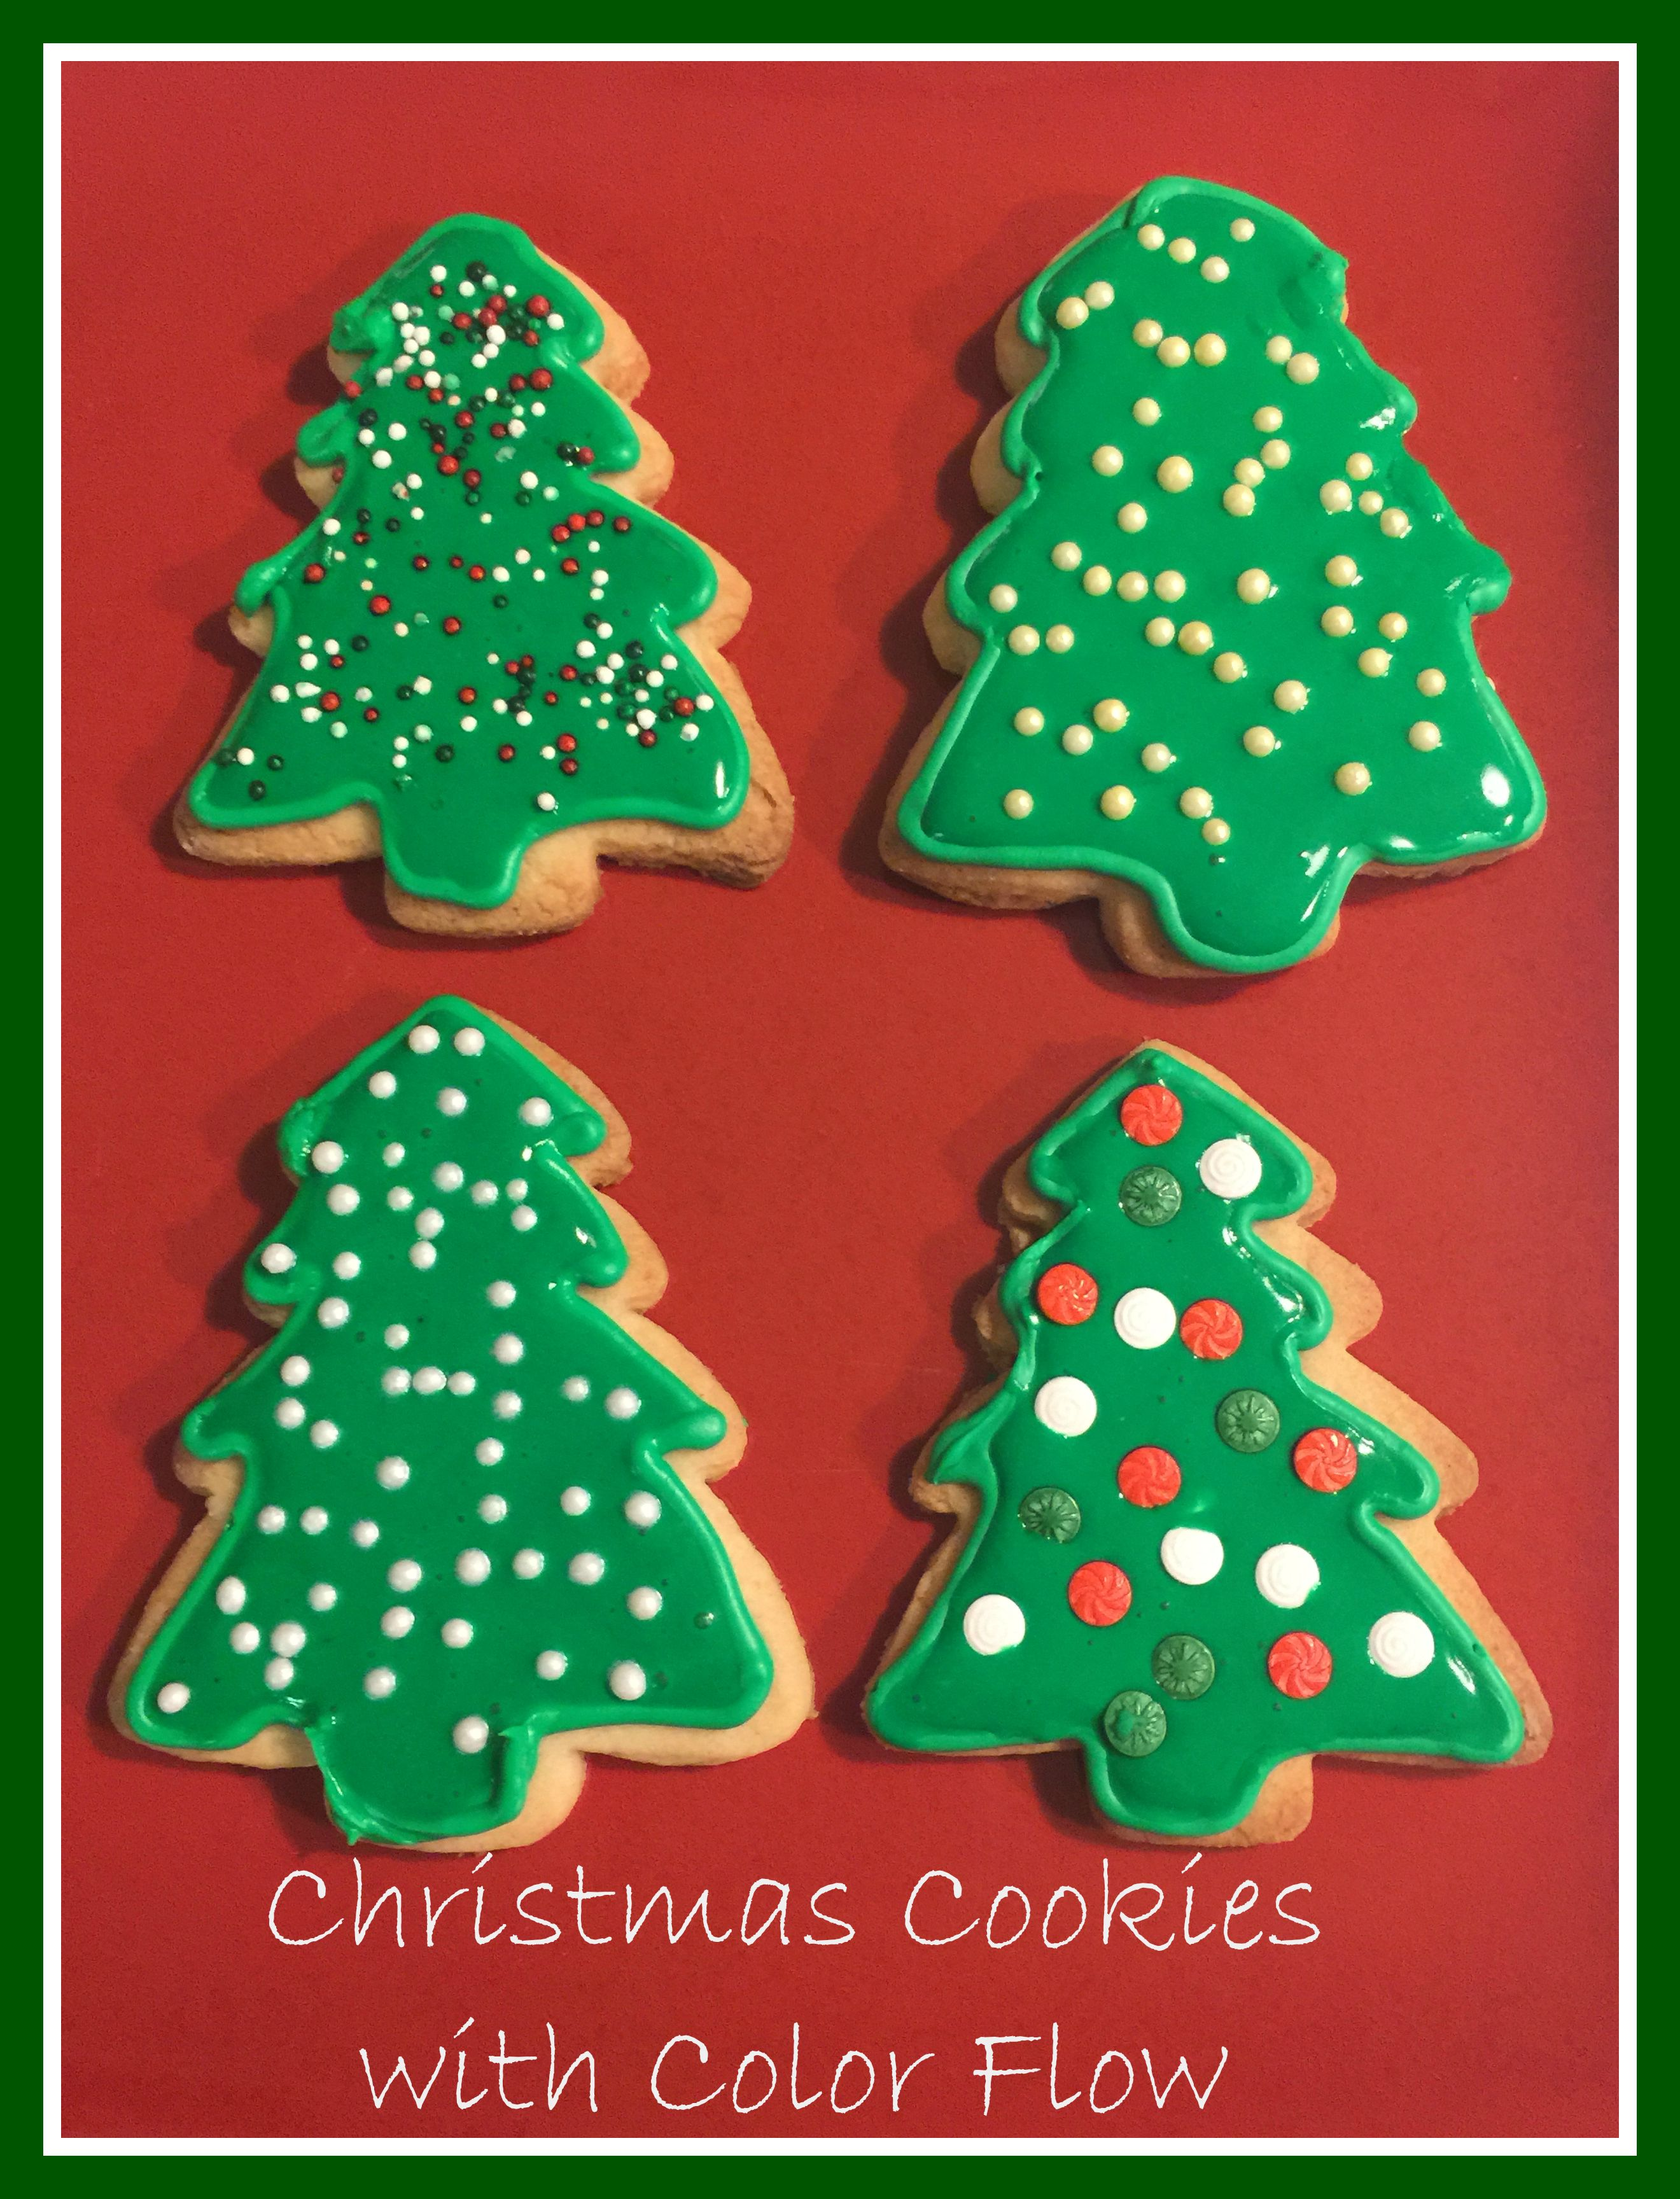 Check out the cookies I made for the Wilton Sweet Treat Team Holiday